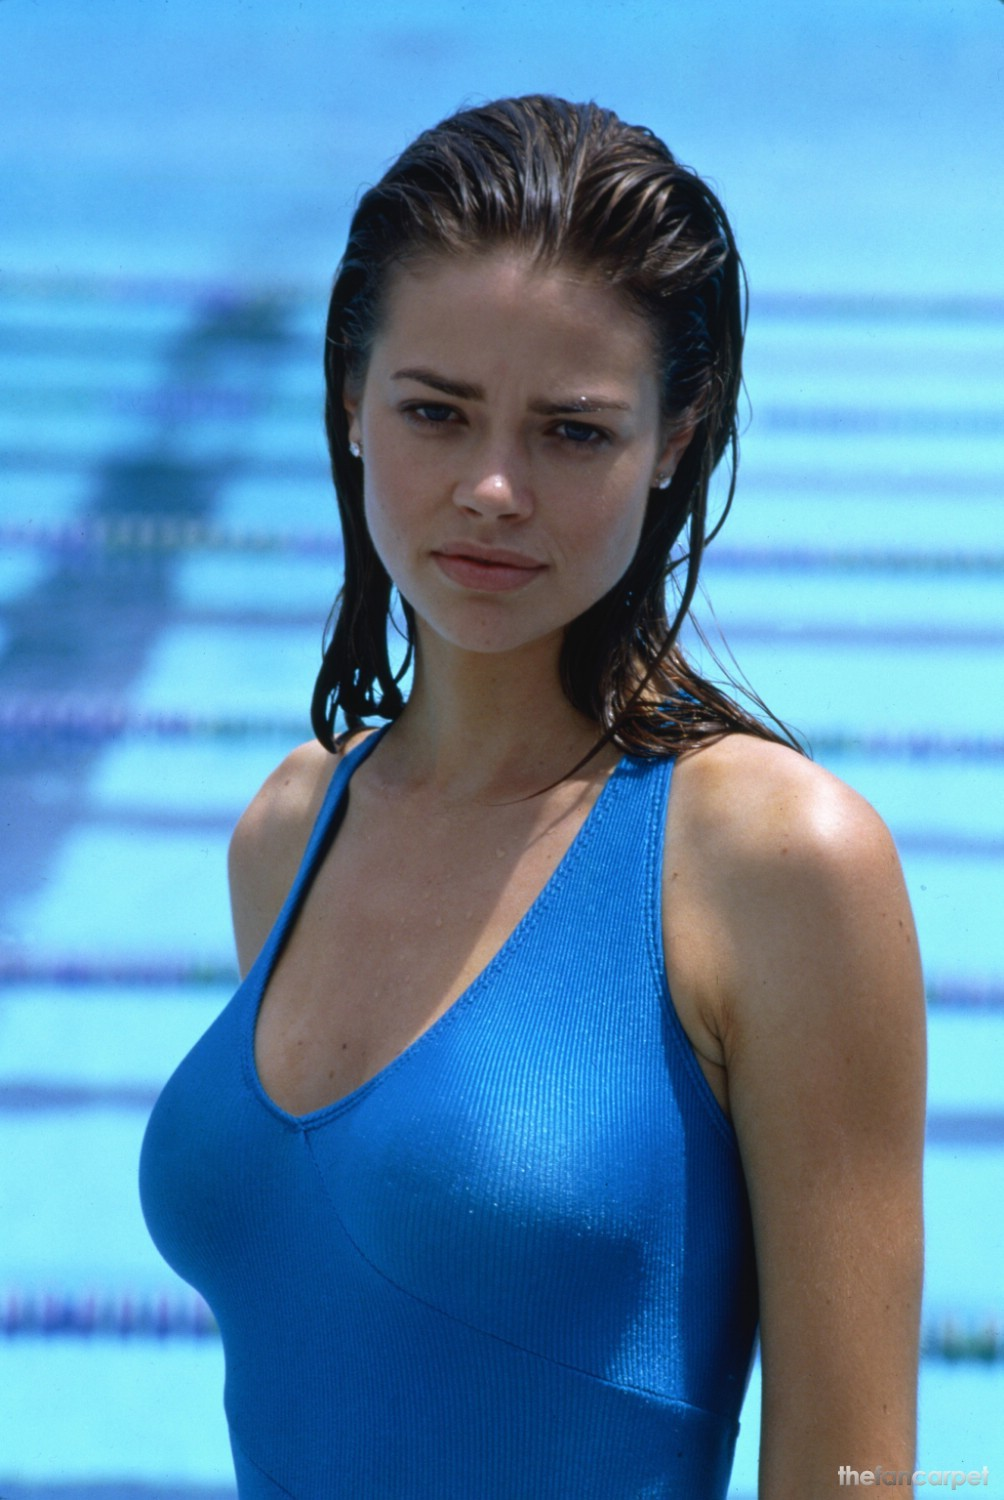 Denise richards Hot on Swimming Costume